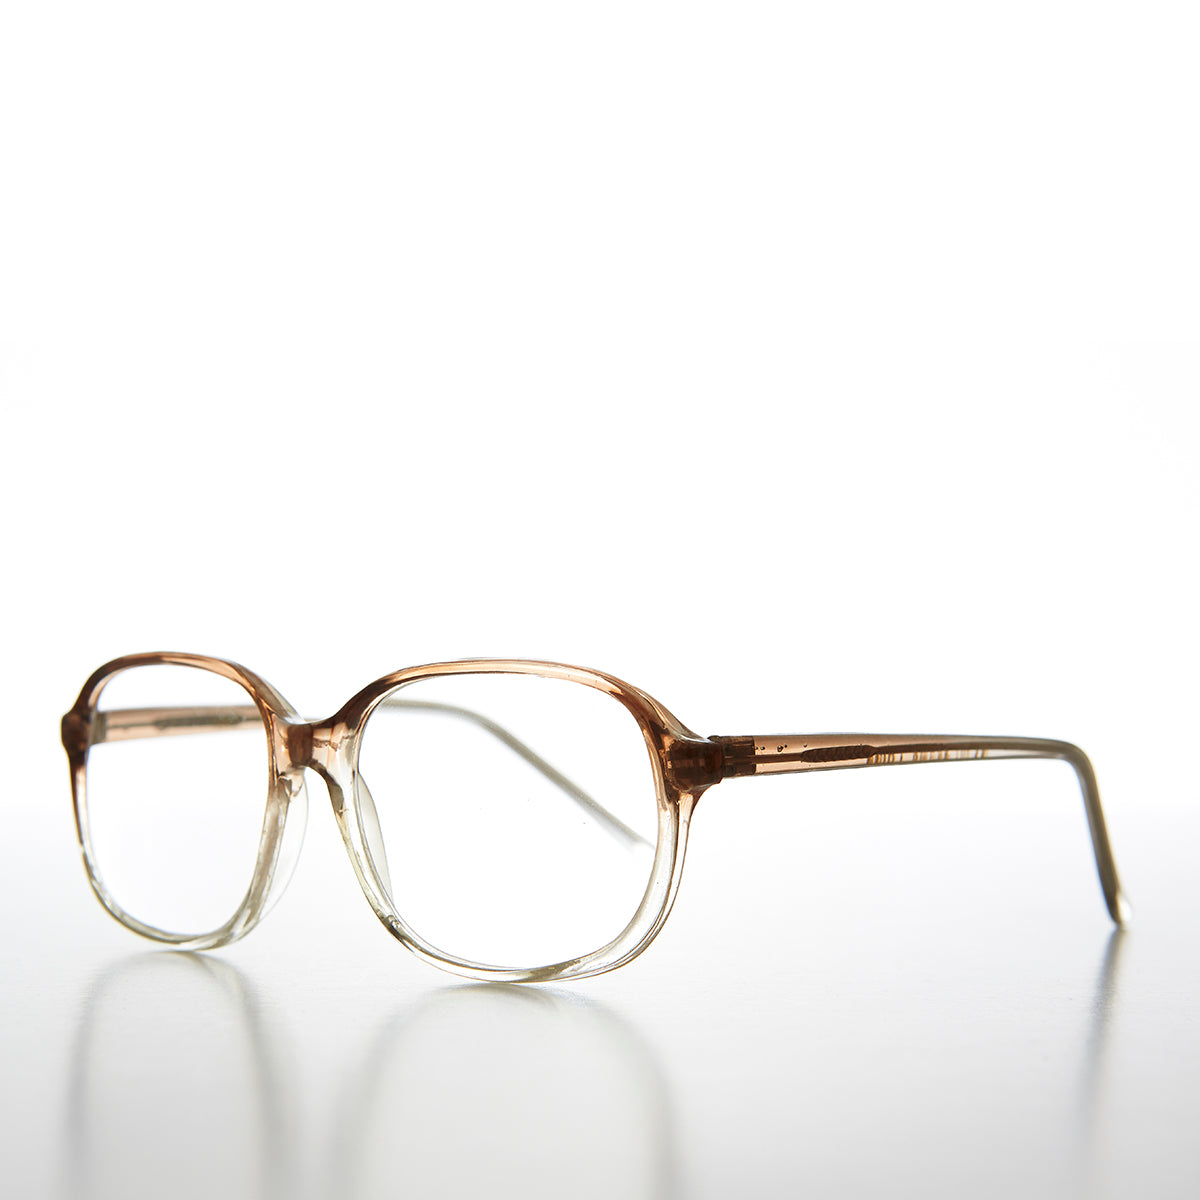 Square Old Fashion Women's Reading Glasses